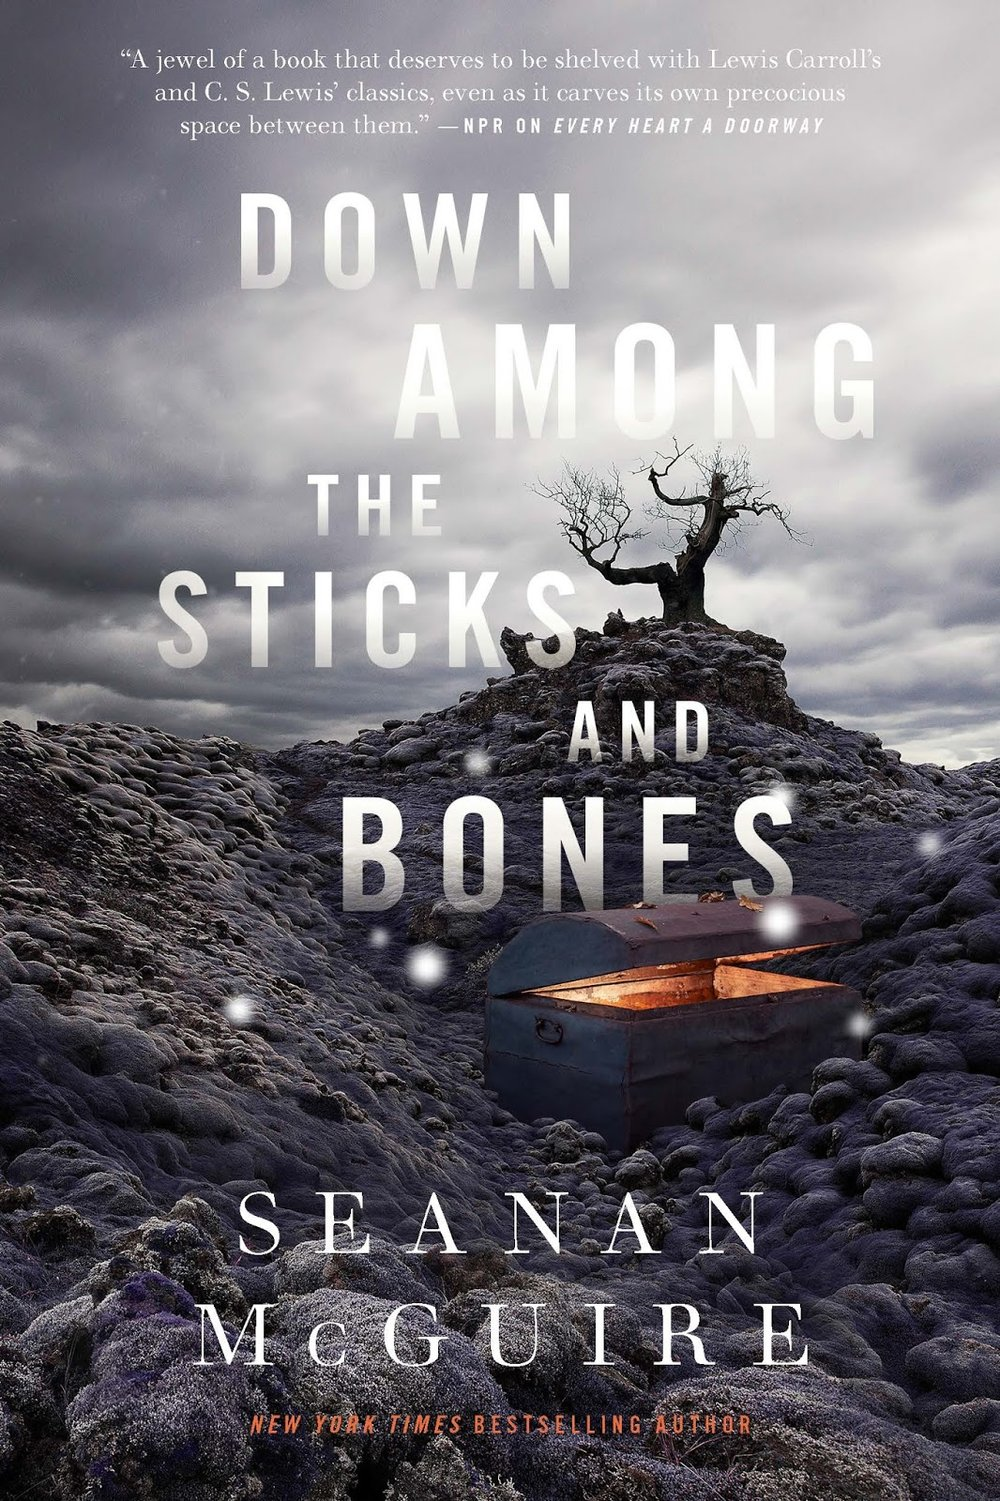 Down Among the Sticks and Bones , by Seanan McGuire